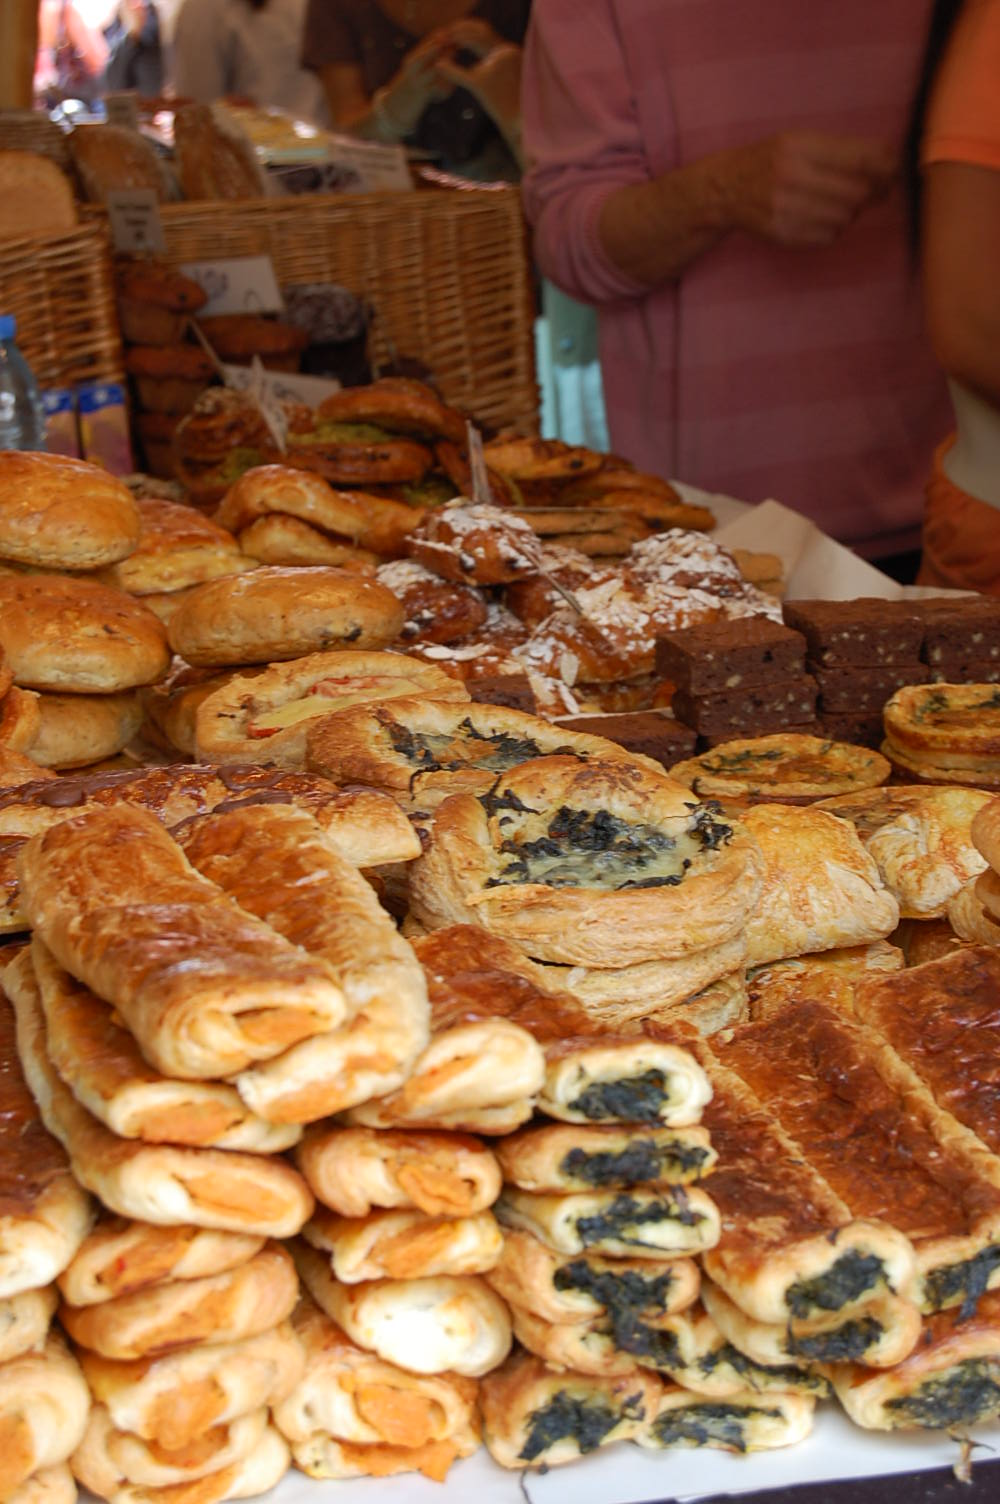 cakes and bakes at columbia road